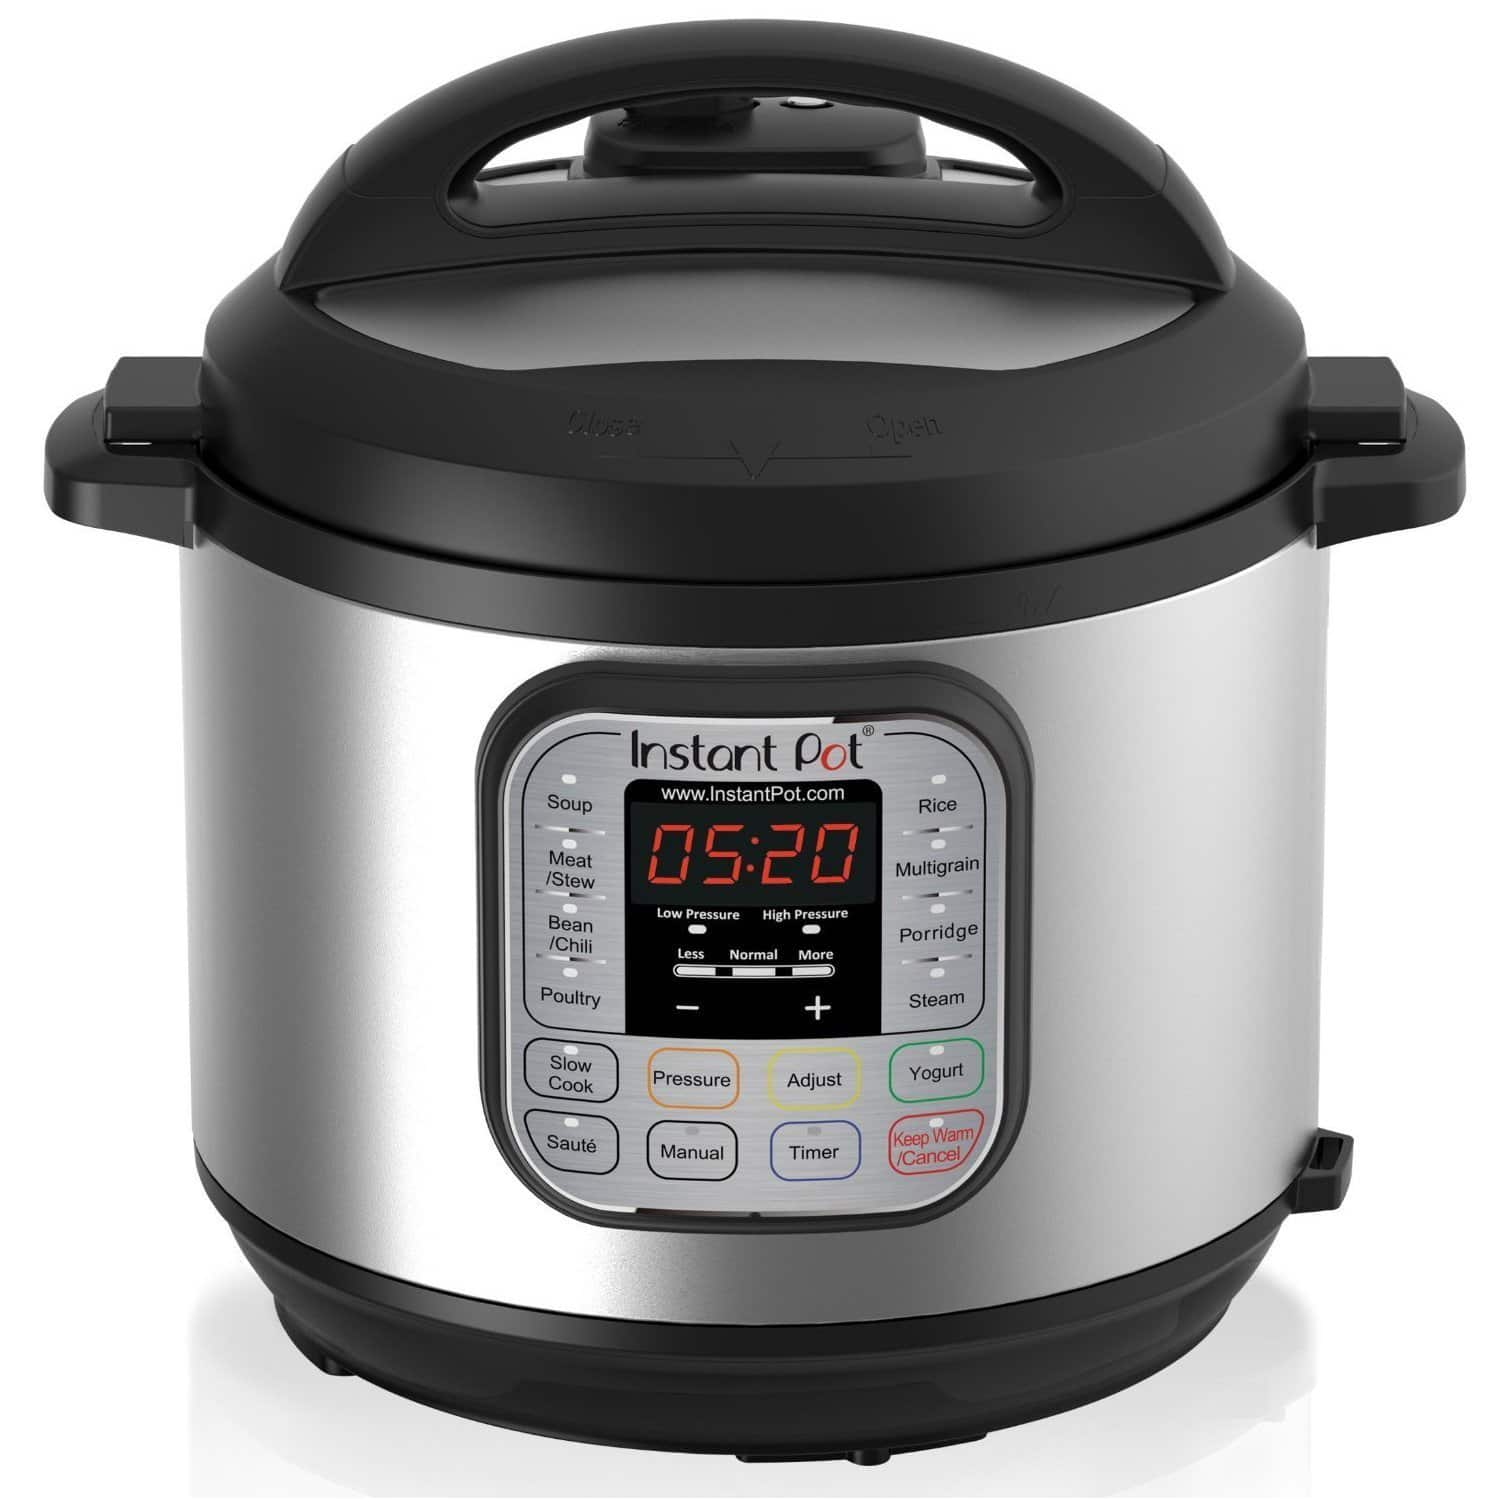 Instant Pot DUO60 6 Qt 7-in-1 Multi-Use Programmable Pressure Cooker, Slow Cooker, Rice Cooker, Yougurt Maker $74.96 Amazon